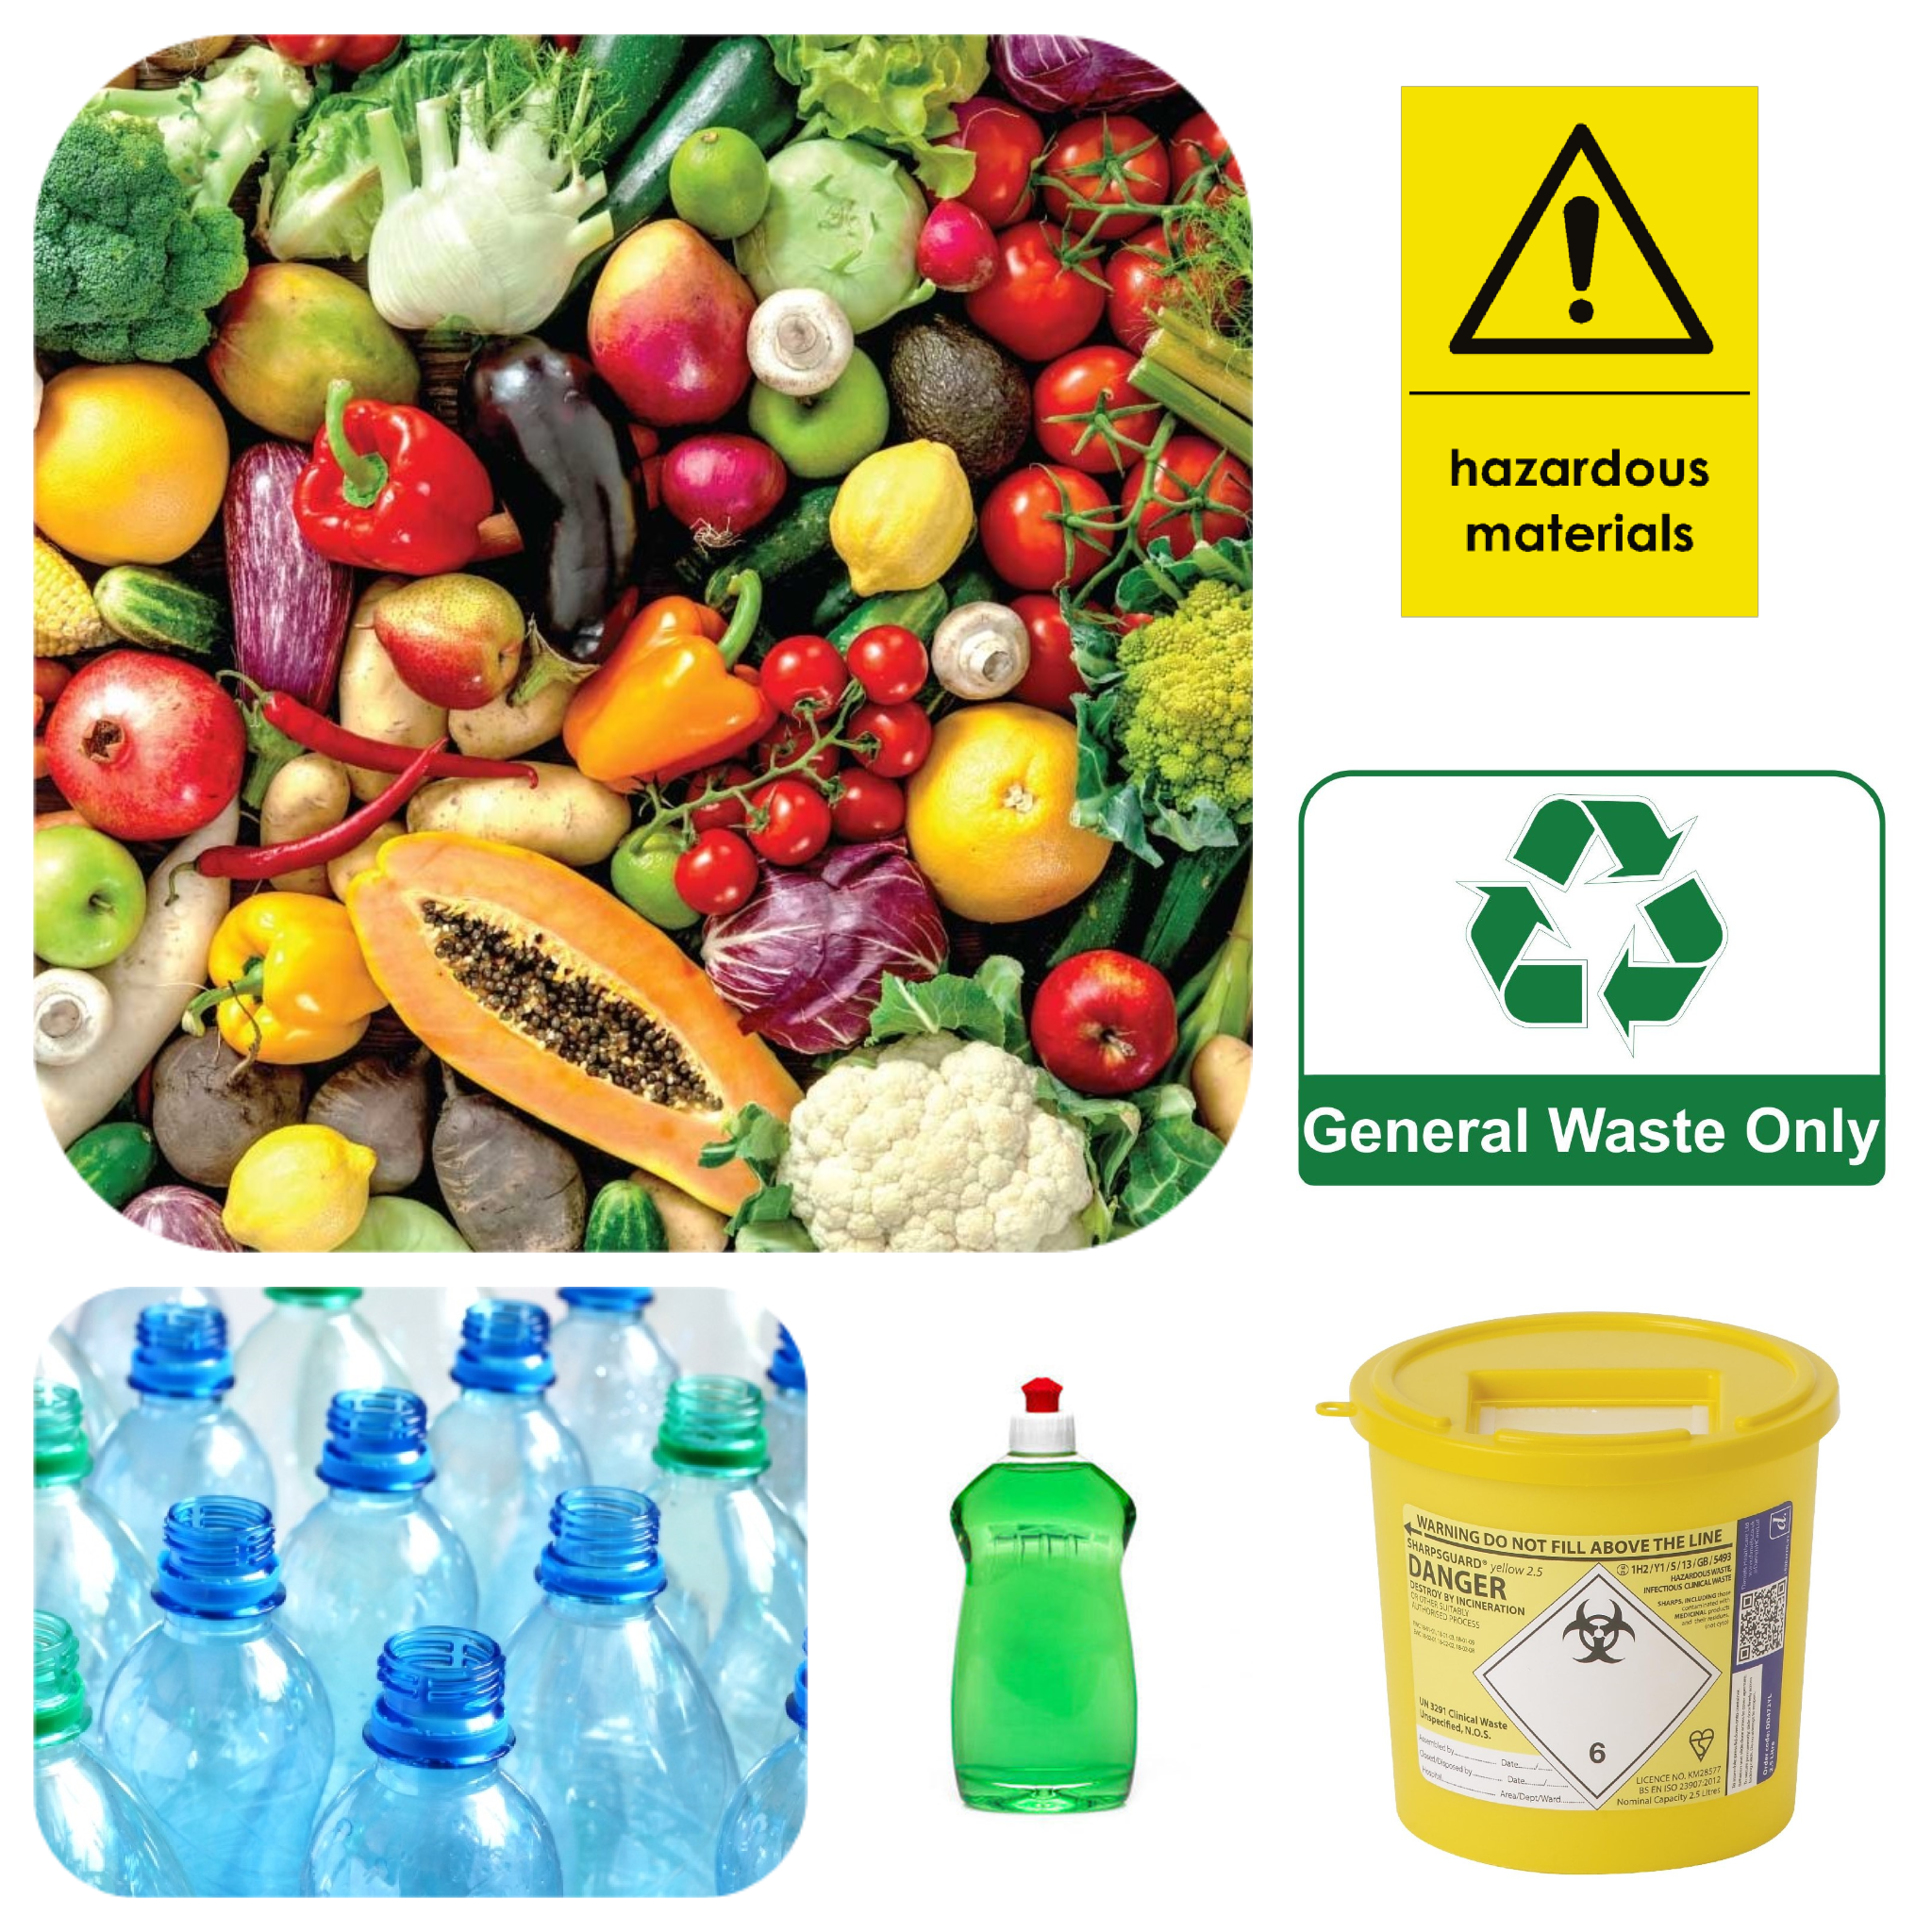 What not to put into a bottle bank - A list of materials not suitable for bottle banks:- Ceramics And Heat Tempered Glass (Cups & Saucers, Plates, Ceramic Tiles, Pyrex Glass, Test Tubes, etcetera).- Non-Hazardous & Hazardous General Waste (Food Waste, Non-recyclables, etcetera).- Other Recyclables (Paper, Plastics, Cardboard, etcetera).- Liquids (Hazardous or otherwise).- Sharps Or Other Potentially Harmful Objects That Are Not Glass.